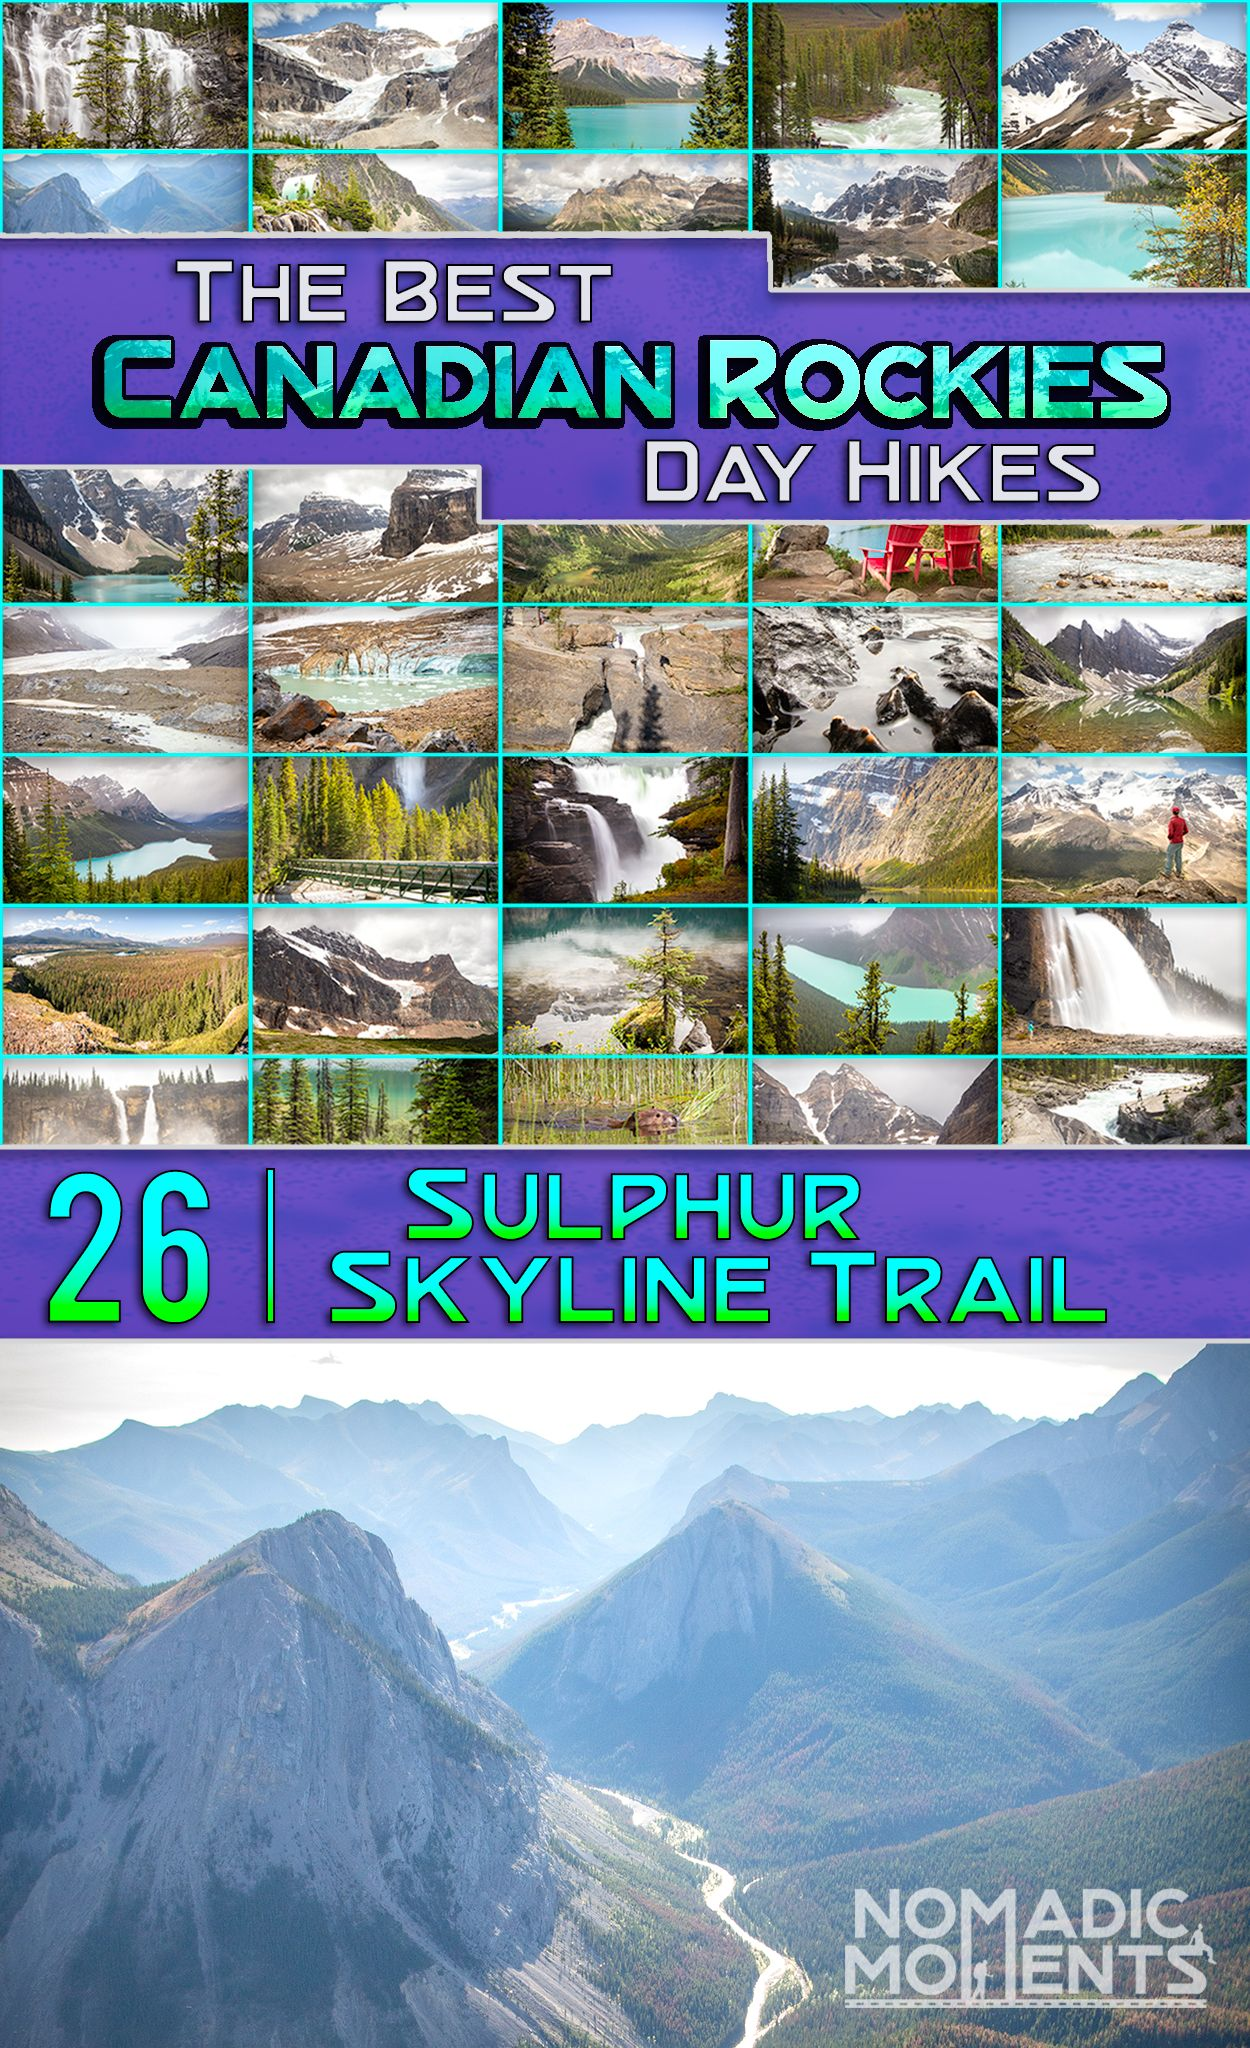 Done In A Day Banff The 10 Premier Hikes Copeland Kathy Copeland Craig 9780978342708 Books Amazon Ca